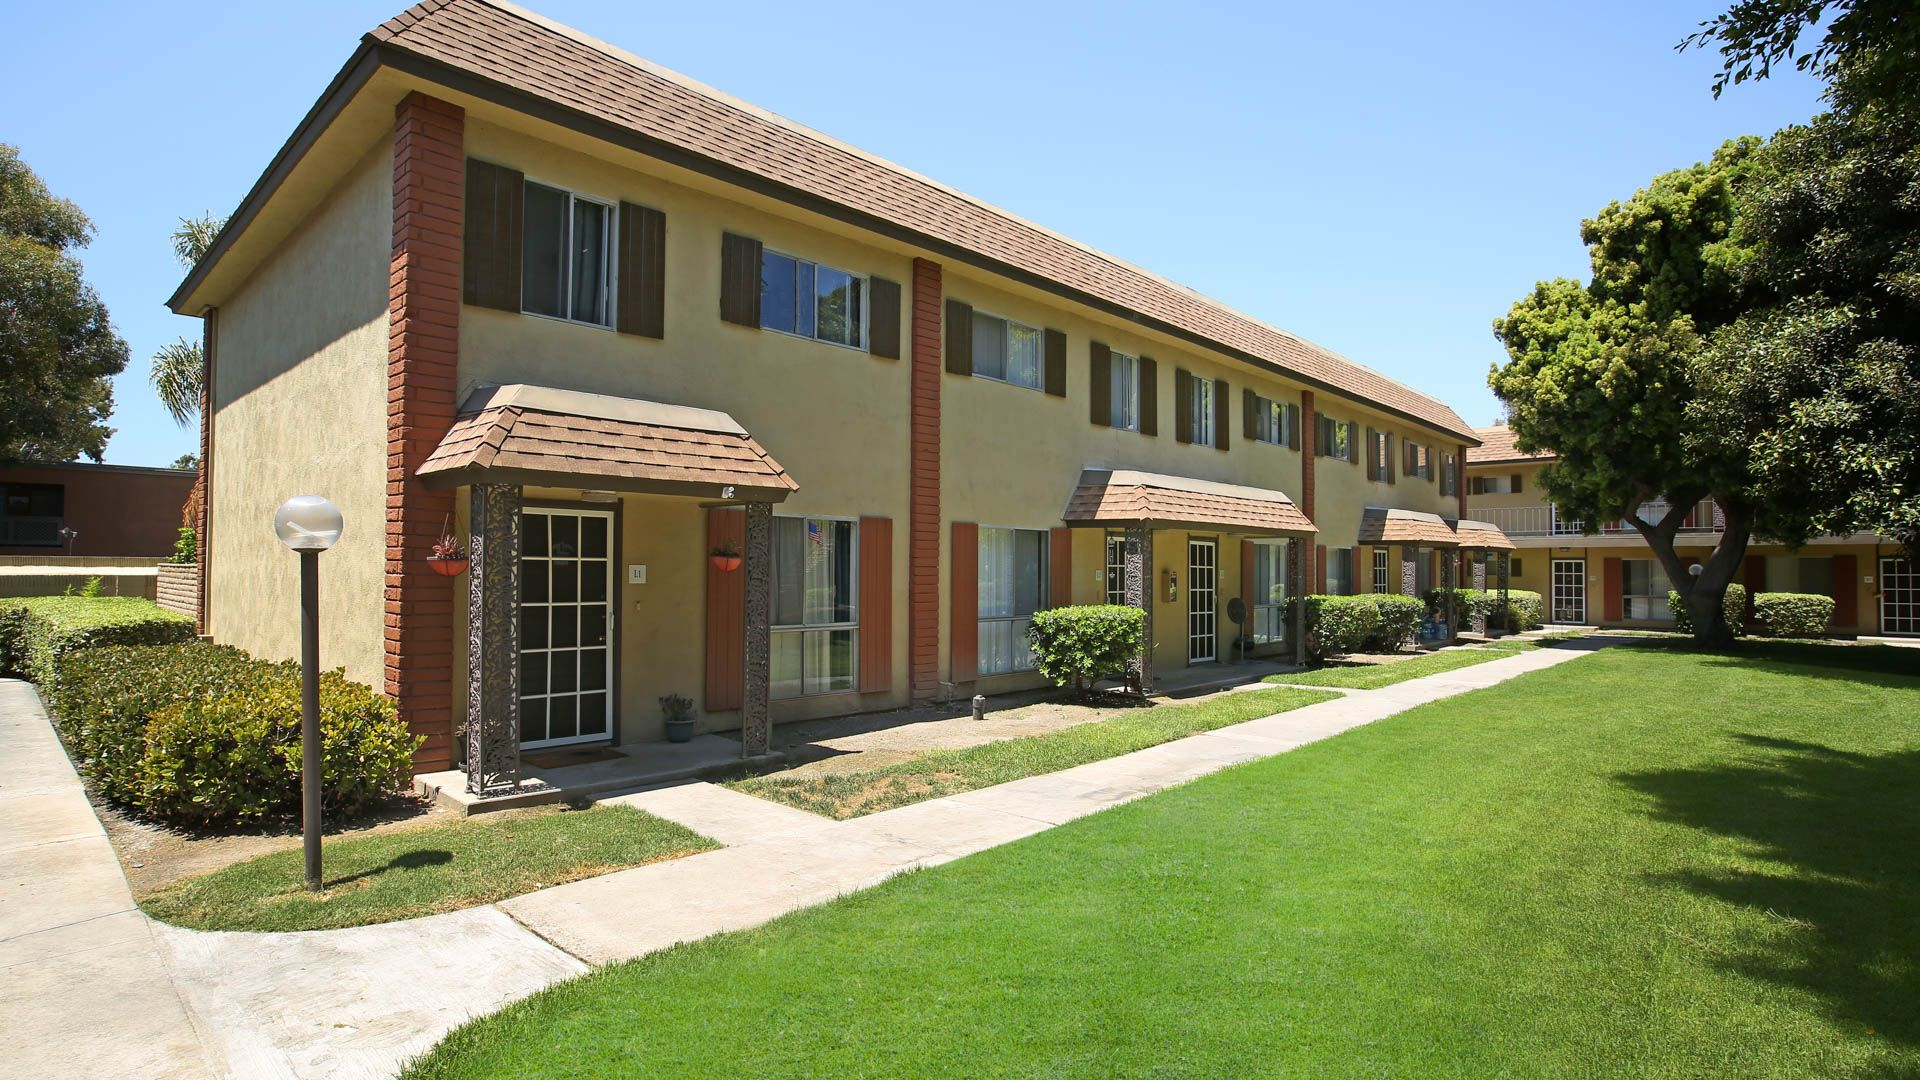 Toscana Apartments Irvine CA 35 Via Lucca EquityApartmentscom